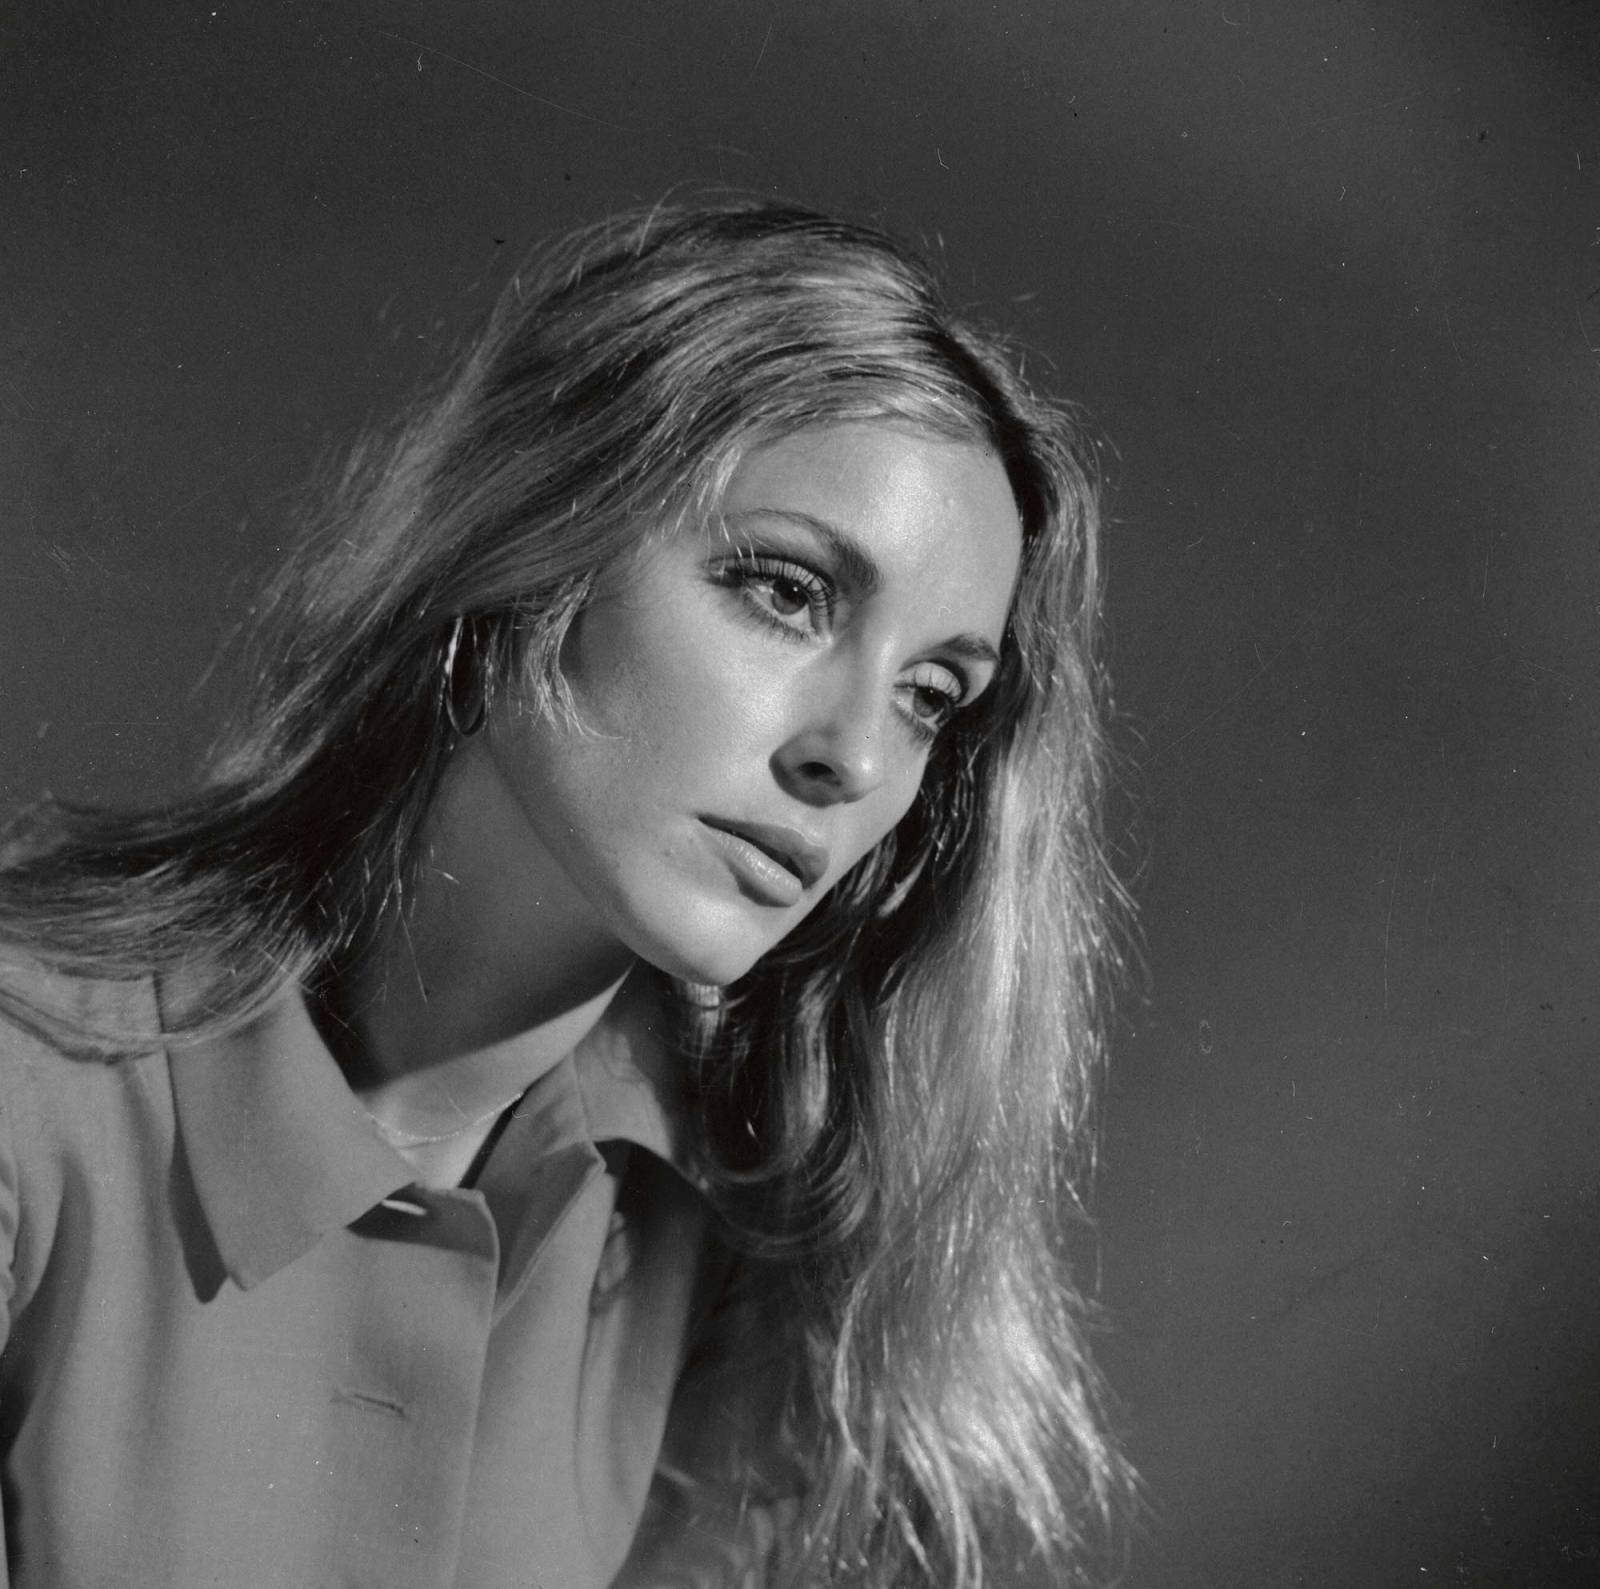 Sharon Tate (Fot. Bettmann)